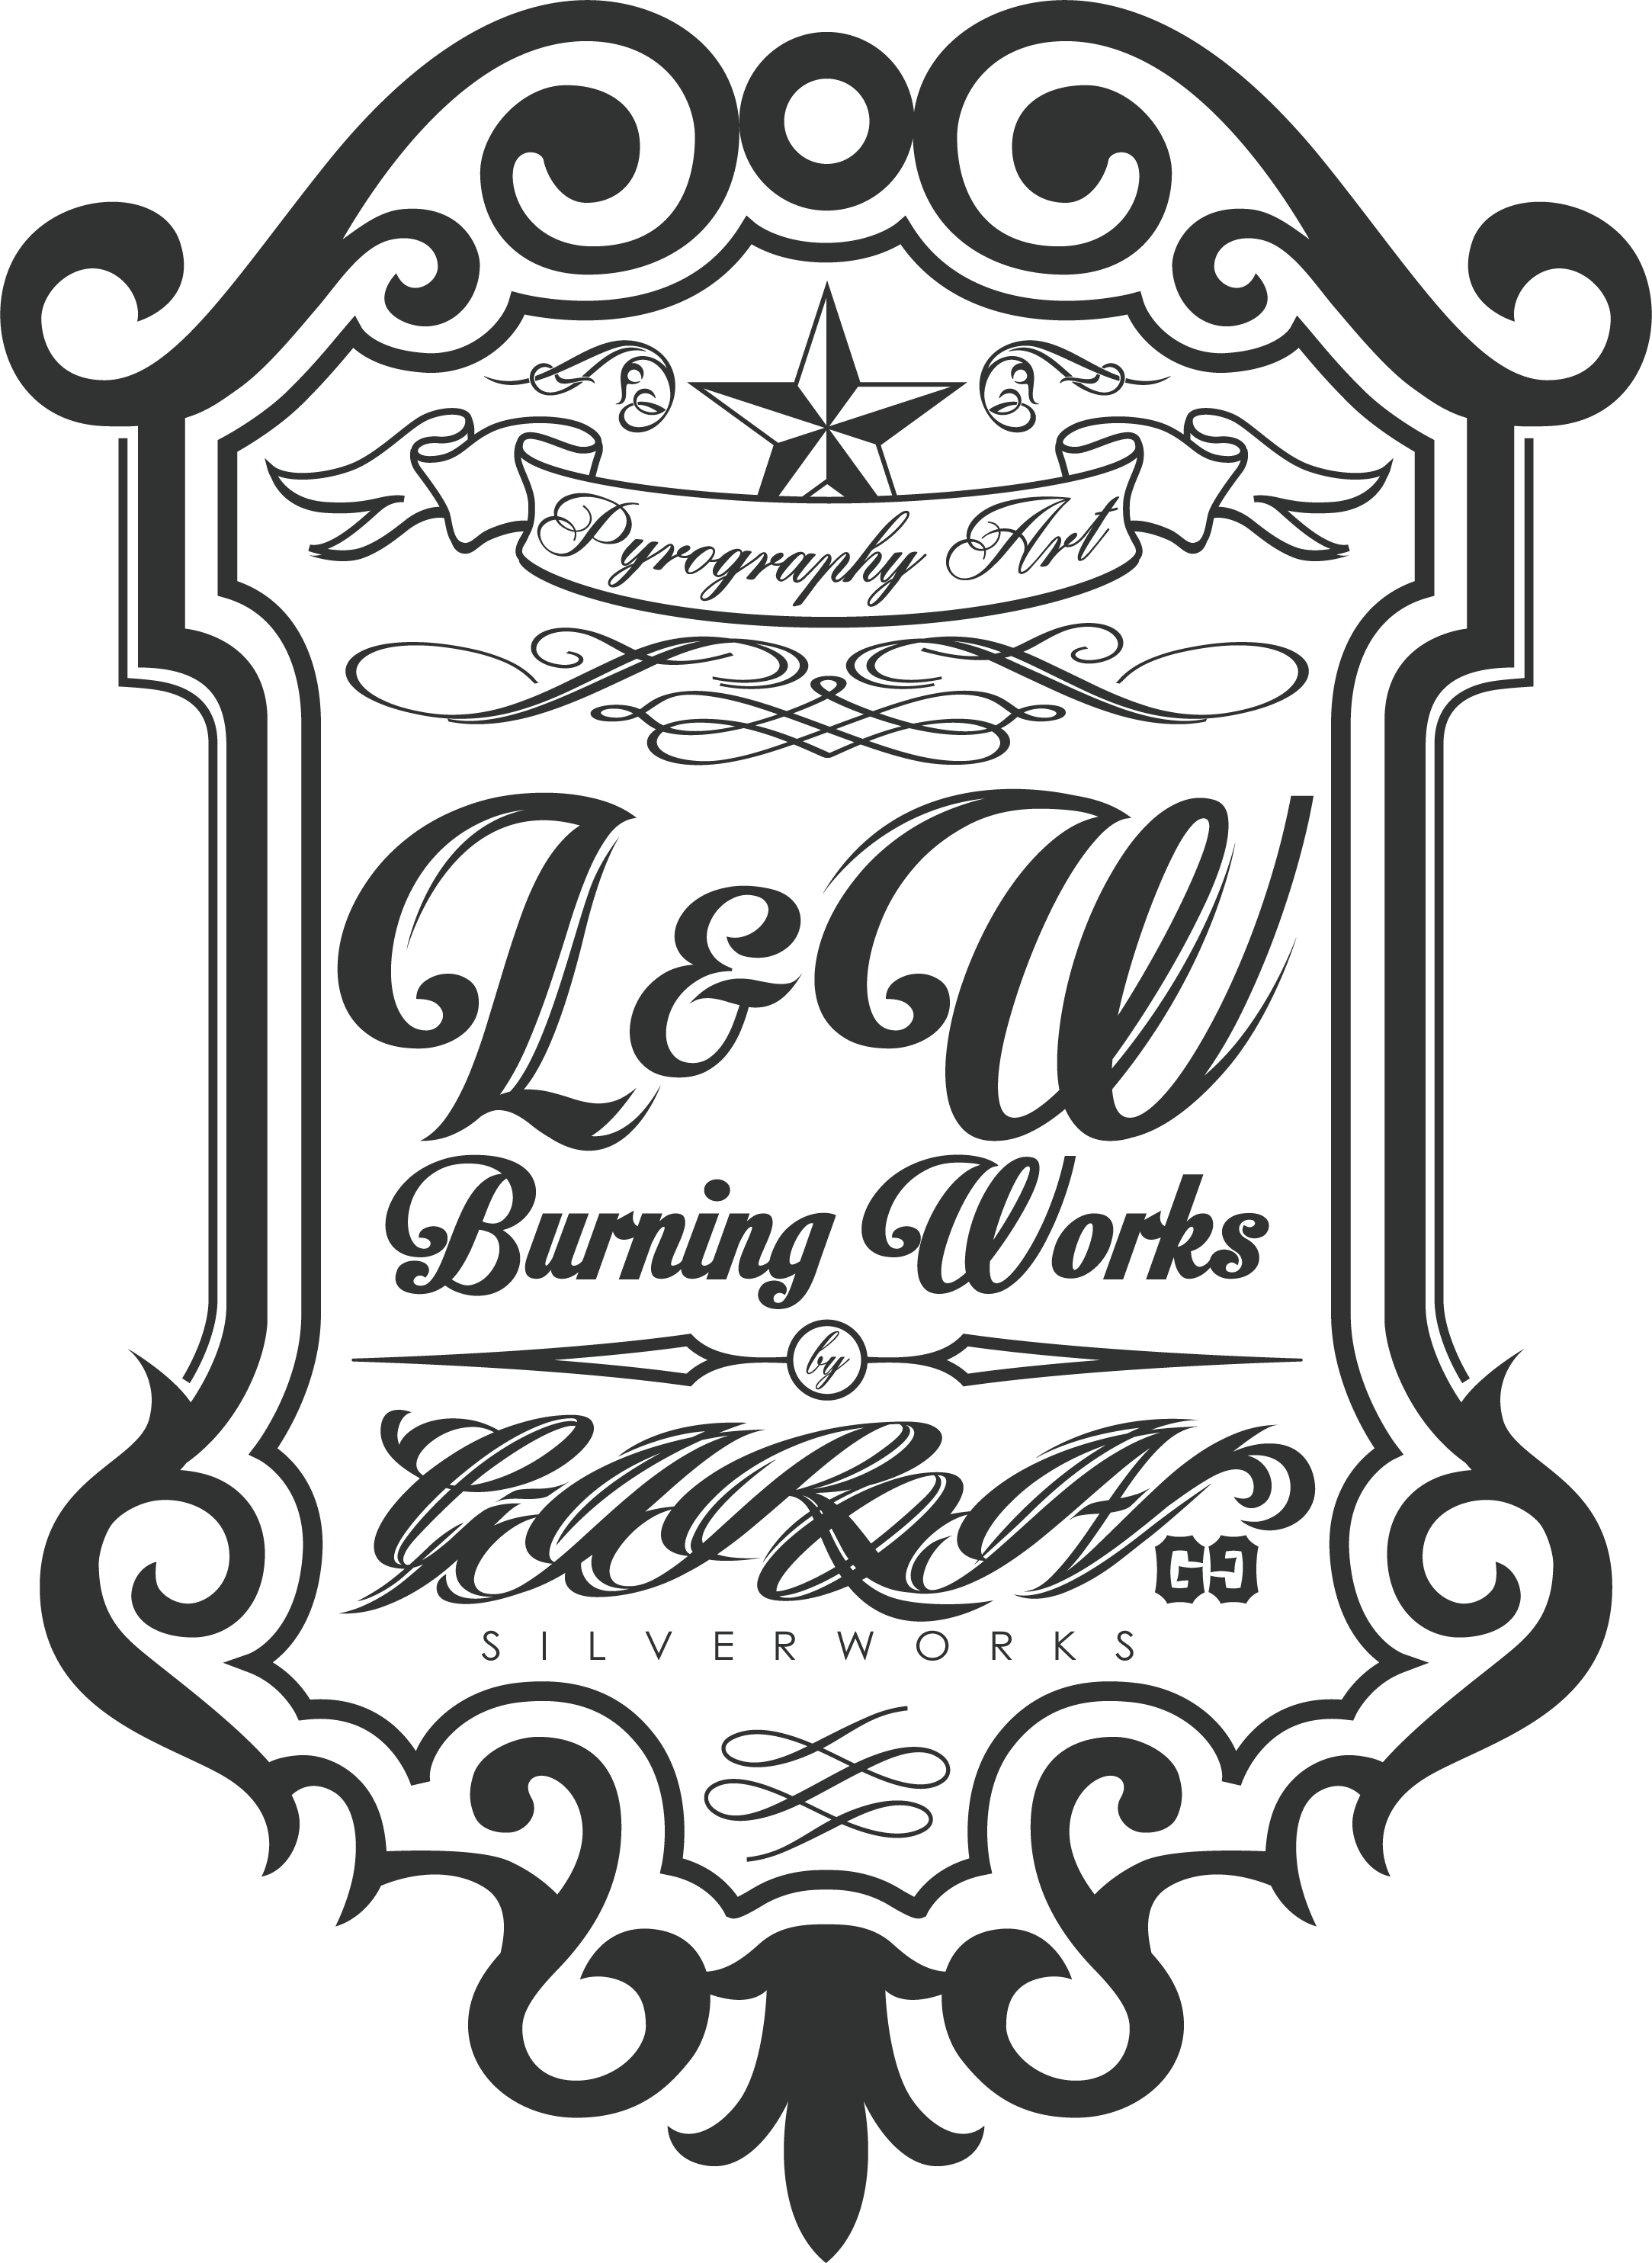 L&W LOGO CASE No,1